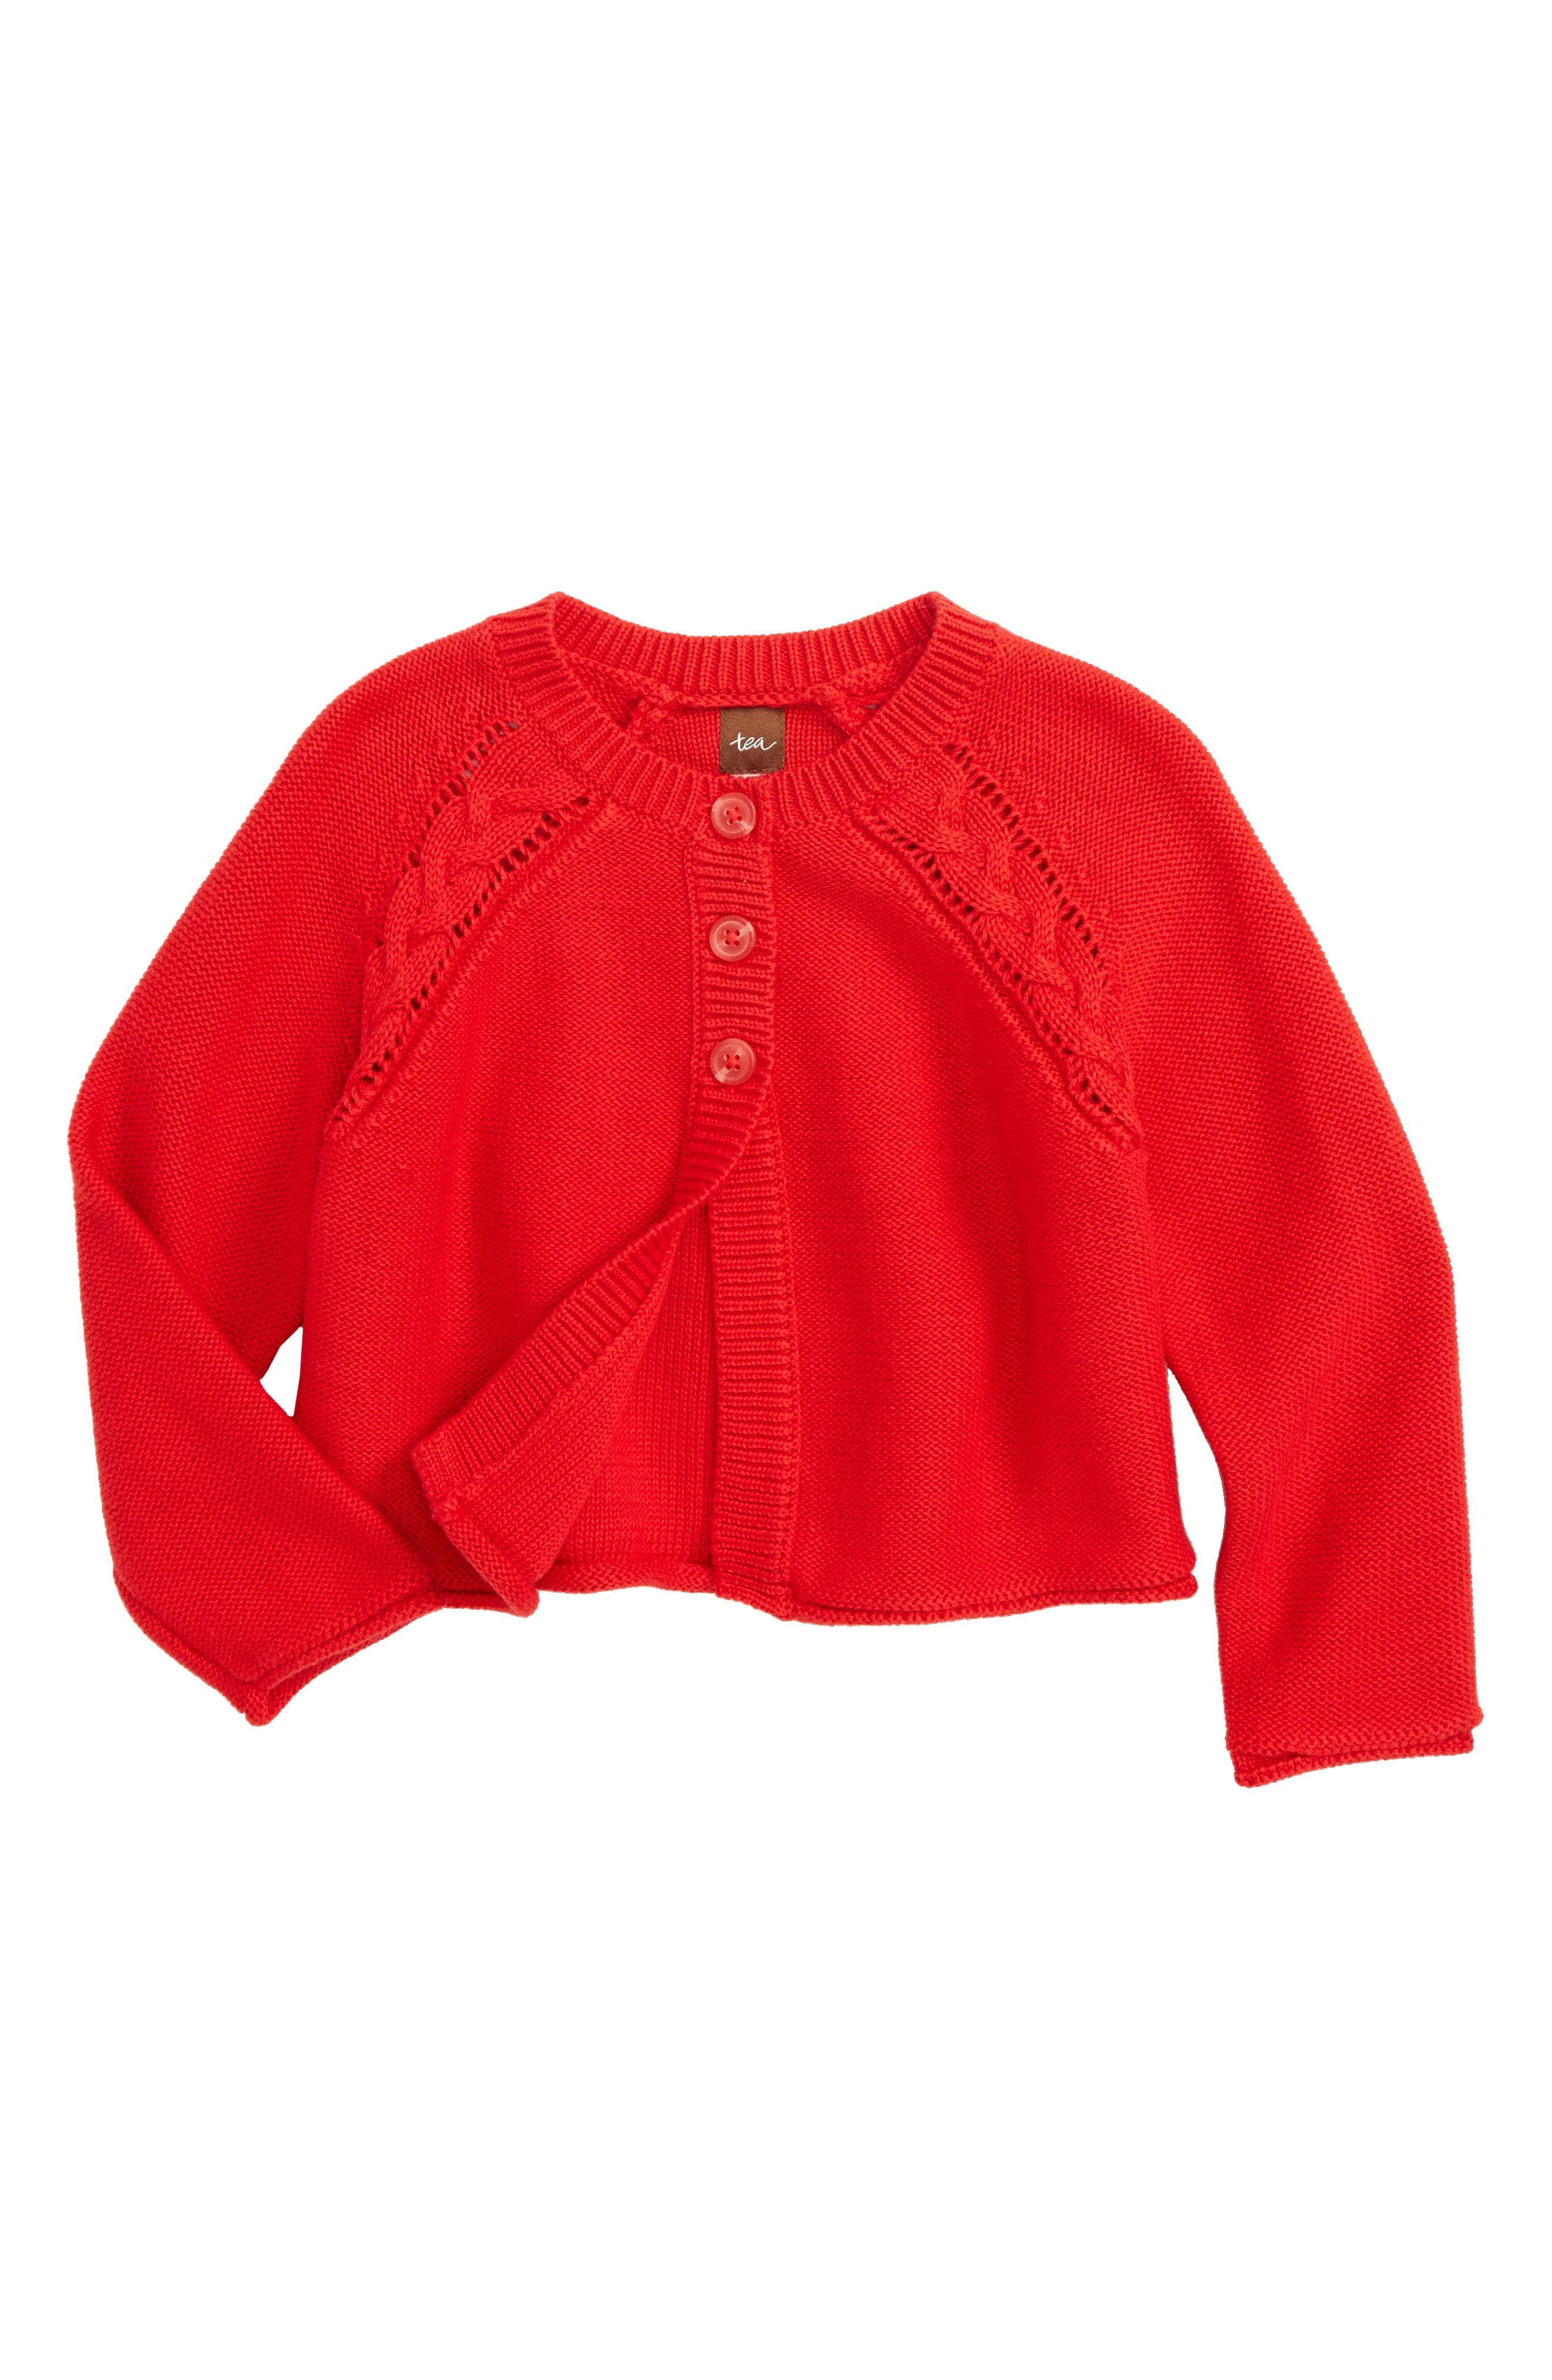 Main Image - Tea Collection Agatha Cable Cardigan (Toddler Girls, Little Girls & Big Girls)